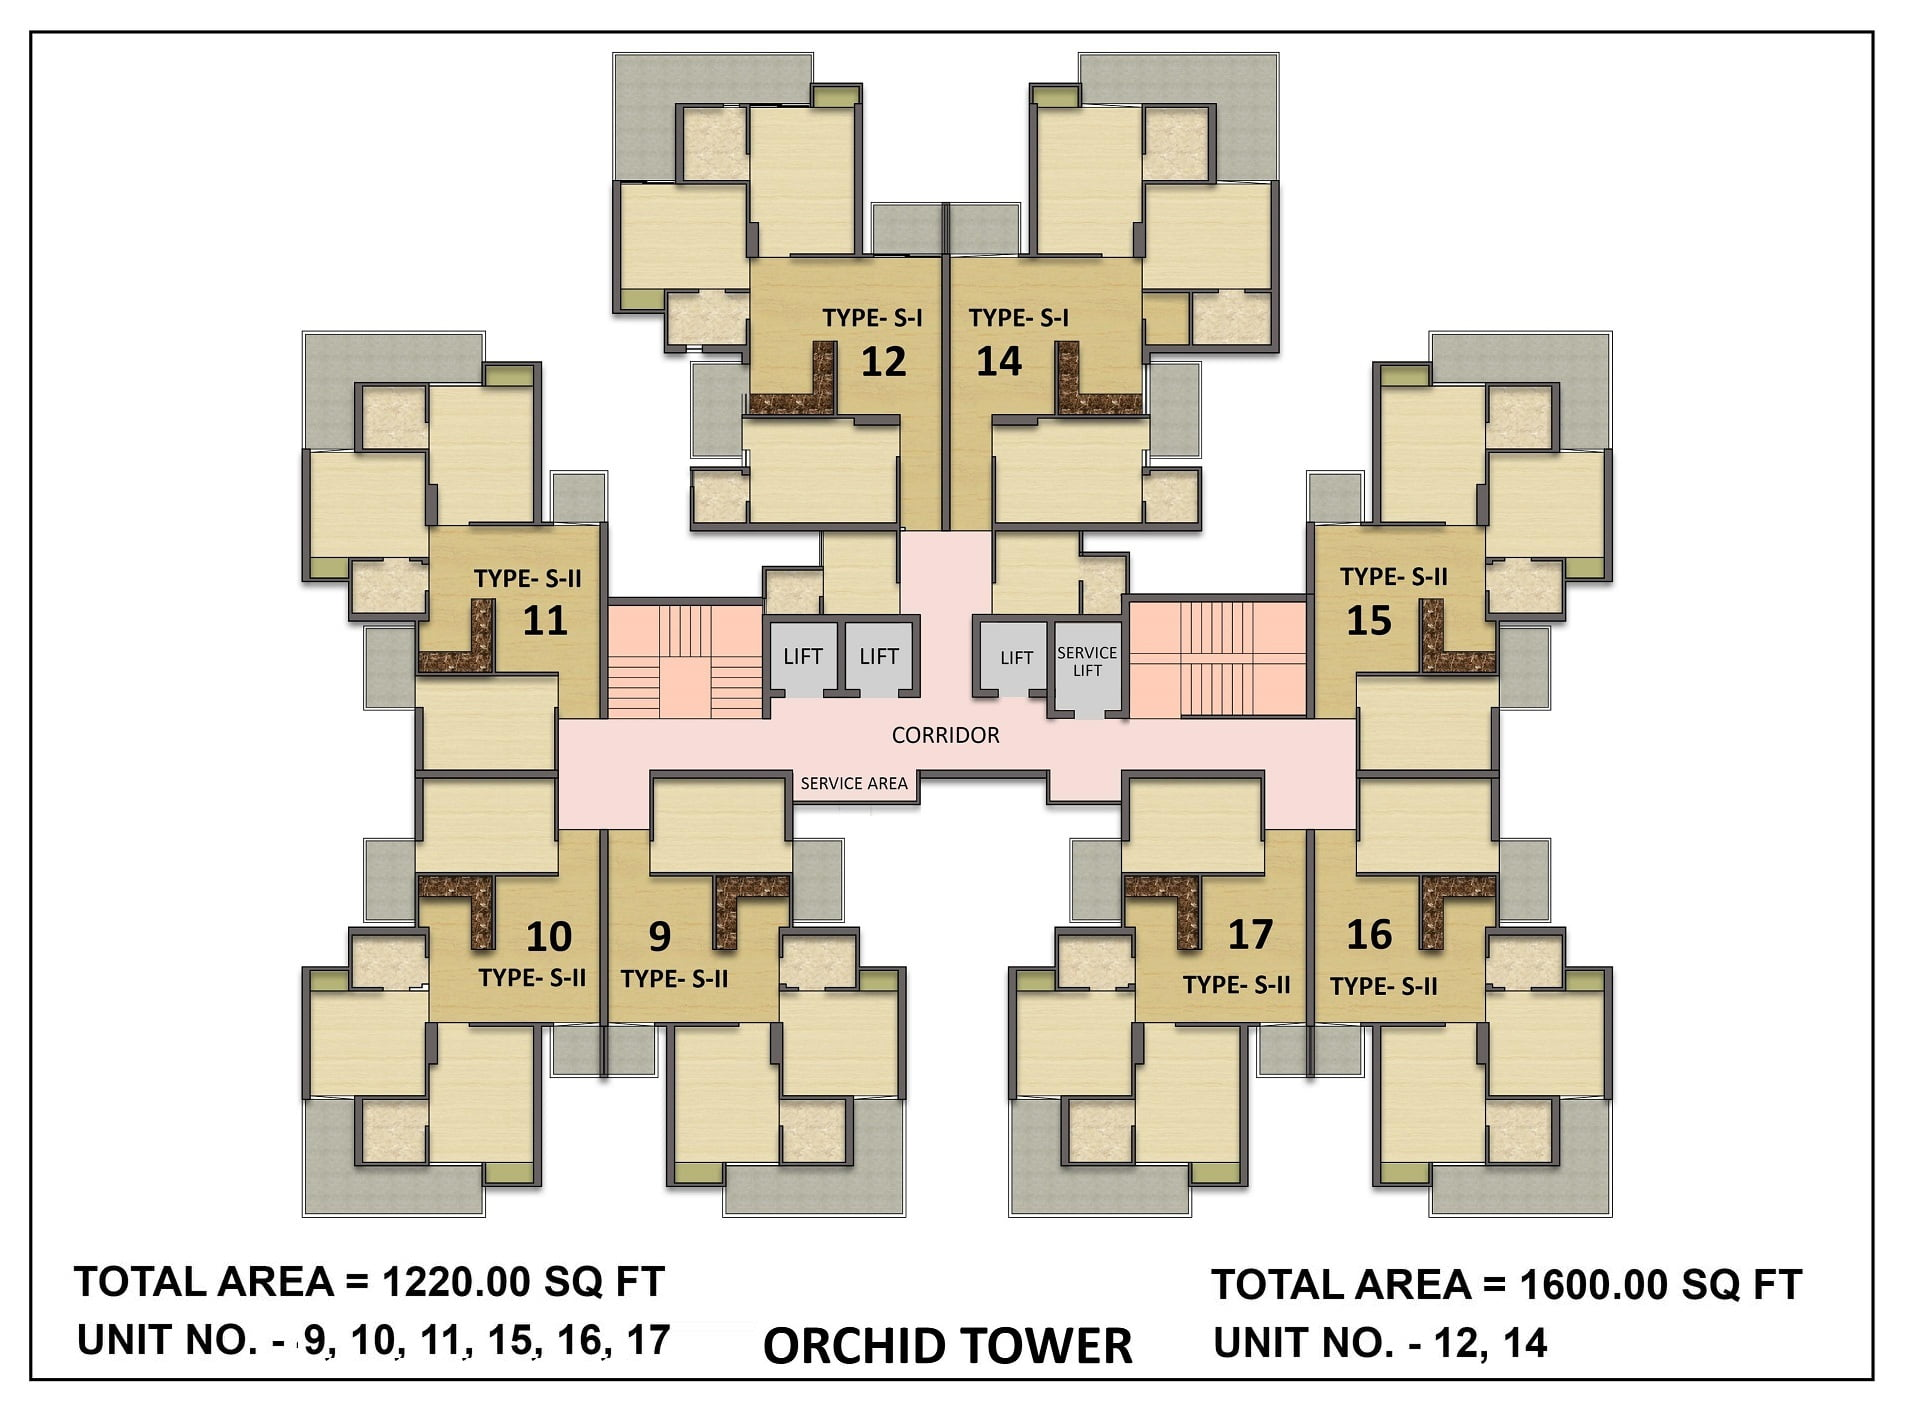 SKA Greenarch -Tower Orchid- Cluster View